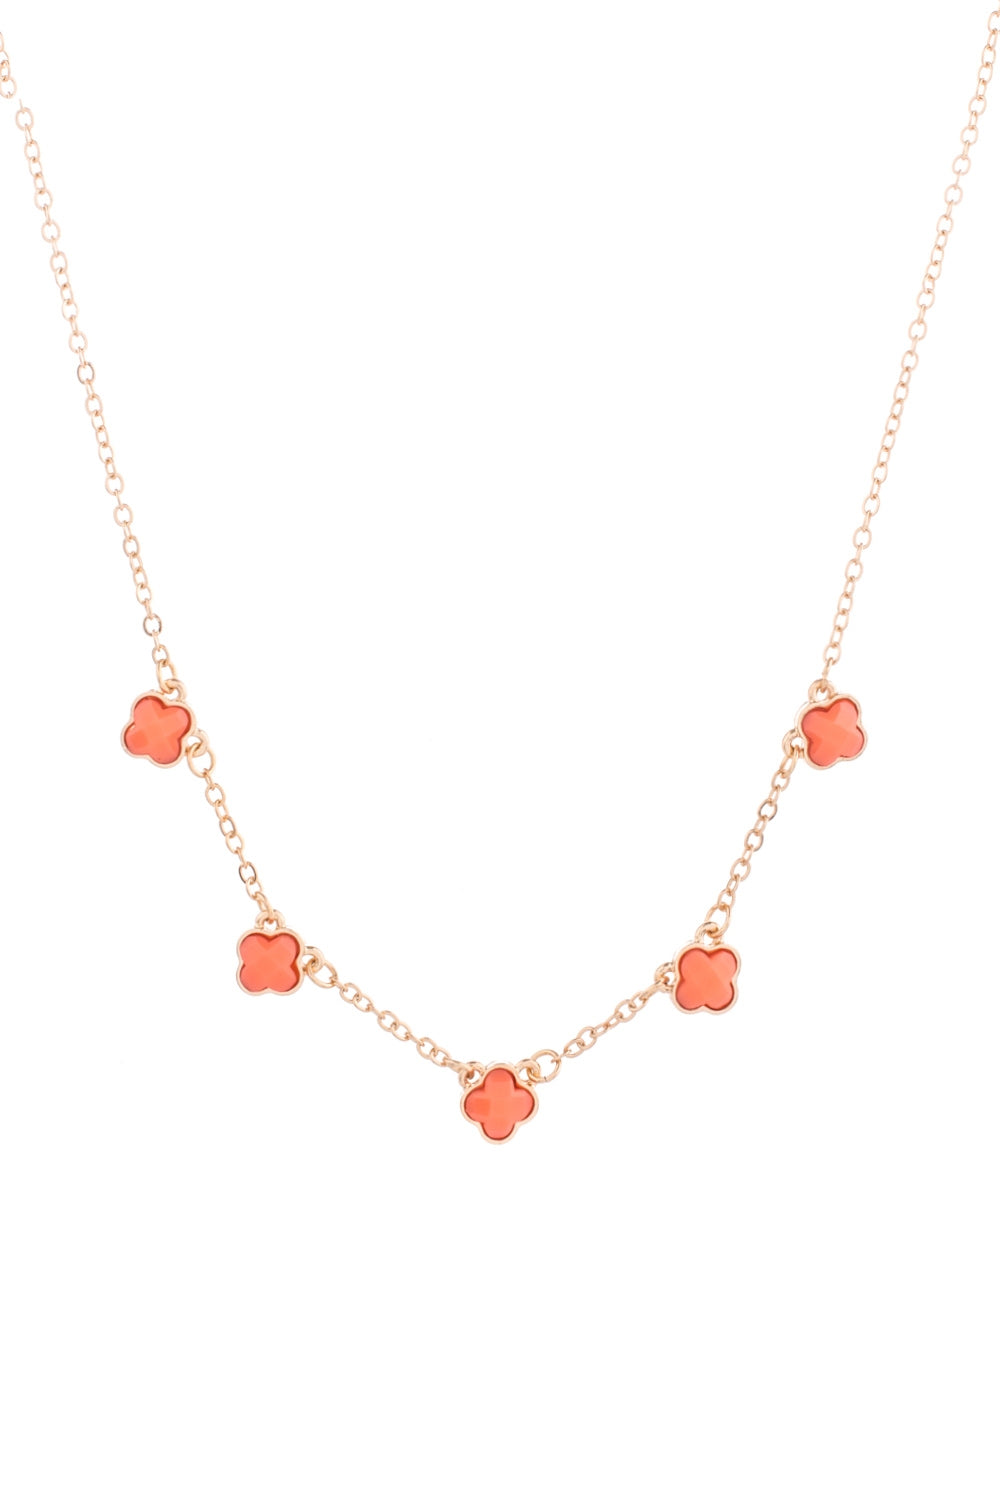 Type 1 Clever Clovers Necklace In Orange